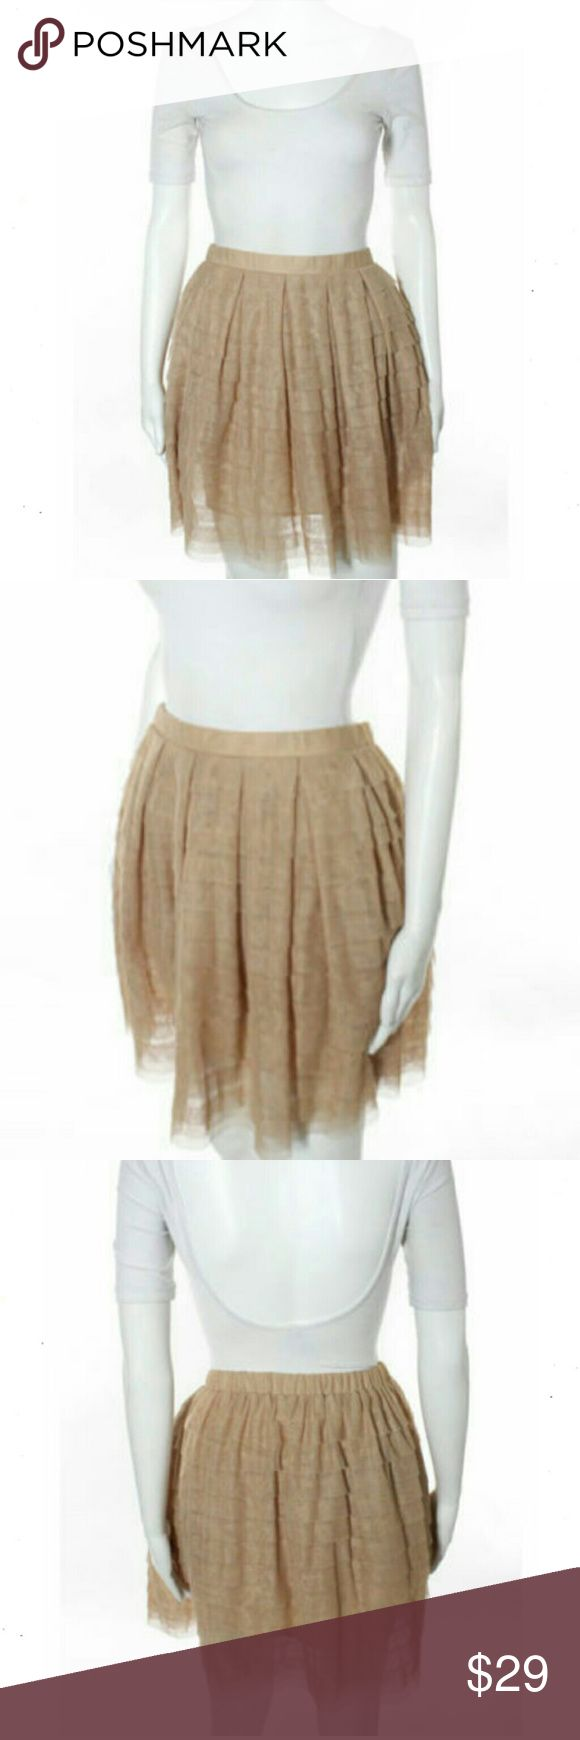 """BCBG MAX AZRIA TAN PLEATED TIERED A LINE BCBG MAX AZRIA LIGHT TAN BROWN YOKE WAIST BOX PLEATED TIERED A LINE SKIRT SZ 2 XS . Type Regular Closure Pull On Bottoms Size (Women's) 2XS Lining Fully Lined Style Tiered Shade Light Brown Color. Total Length 18.5"""" Material Polyester Waist 28"""" Length 18.5"""" Fabric 100% Polyester E/C (1223-B1) BCBGMaxAzria Skirts A-Line or Full"""